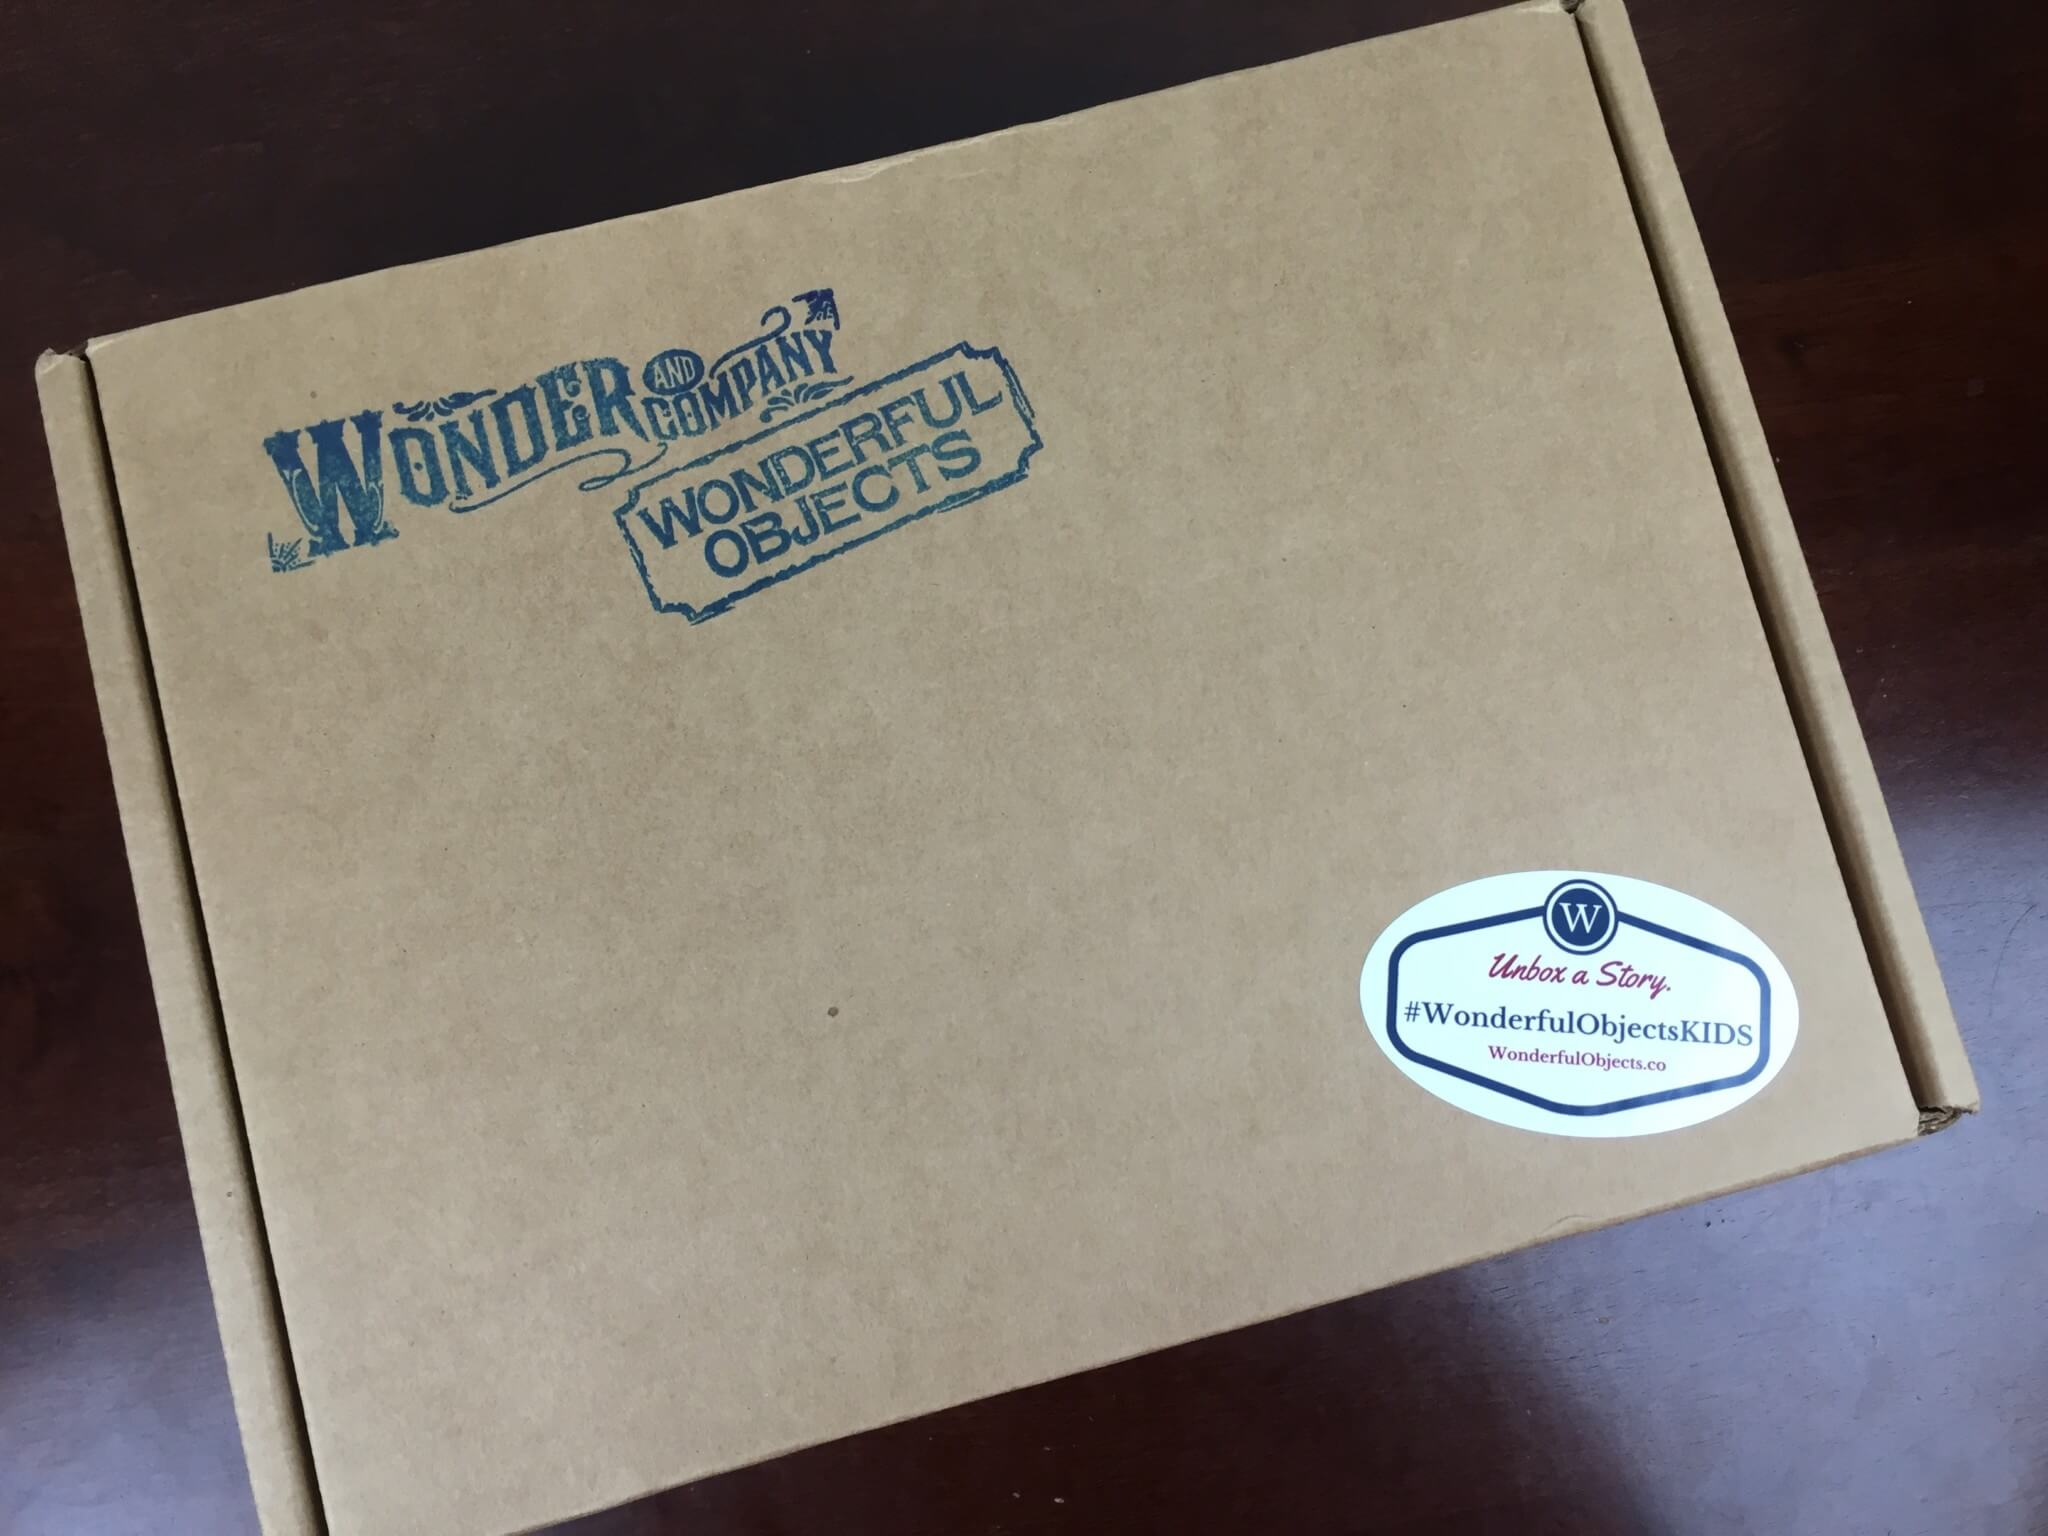 Wonderful Objects Kids Box by Wonder and Co Summer 2016 box